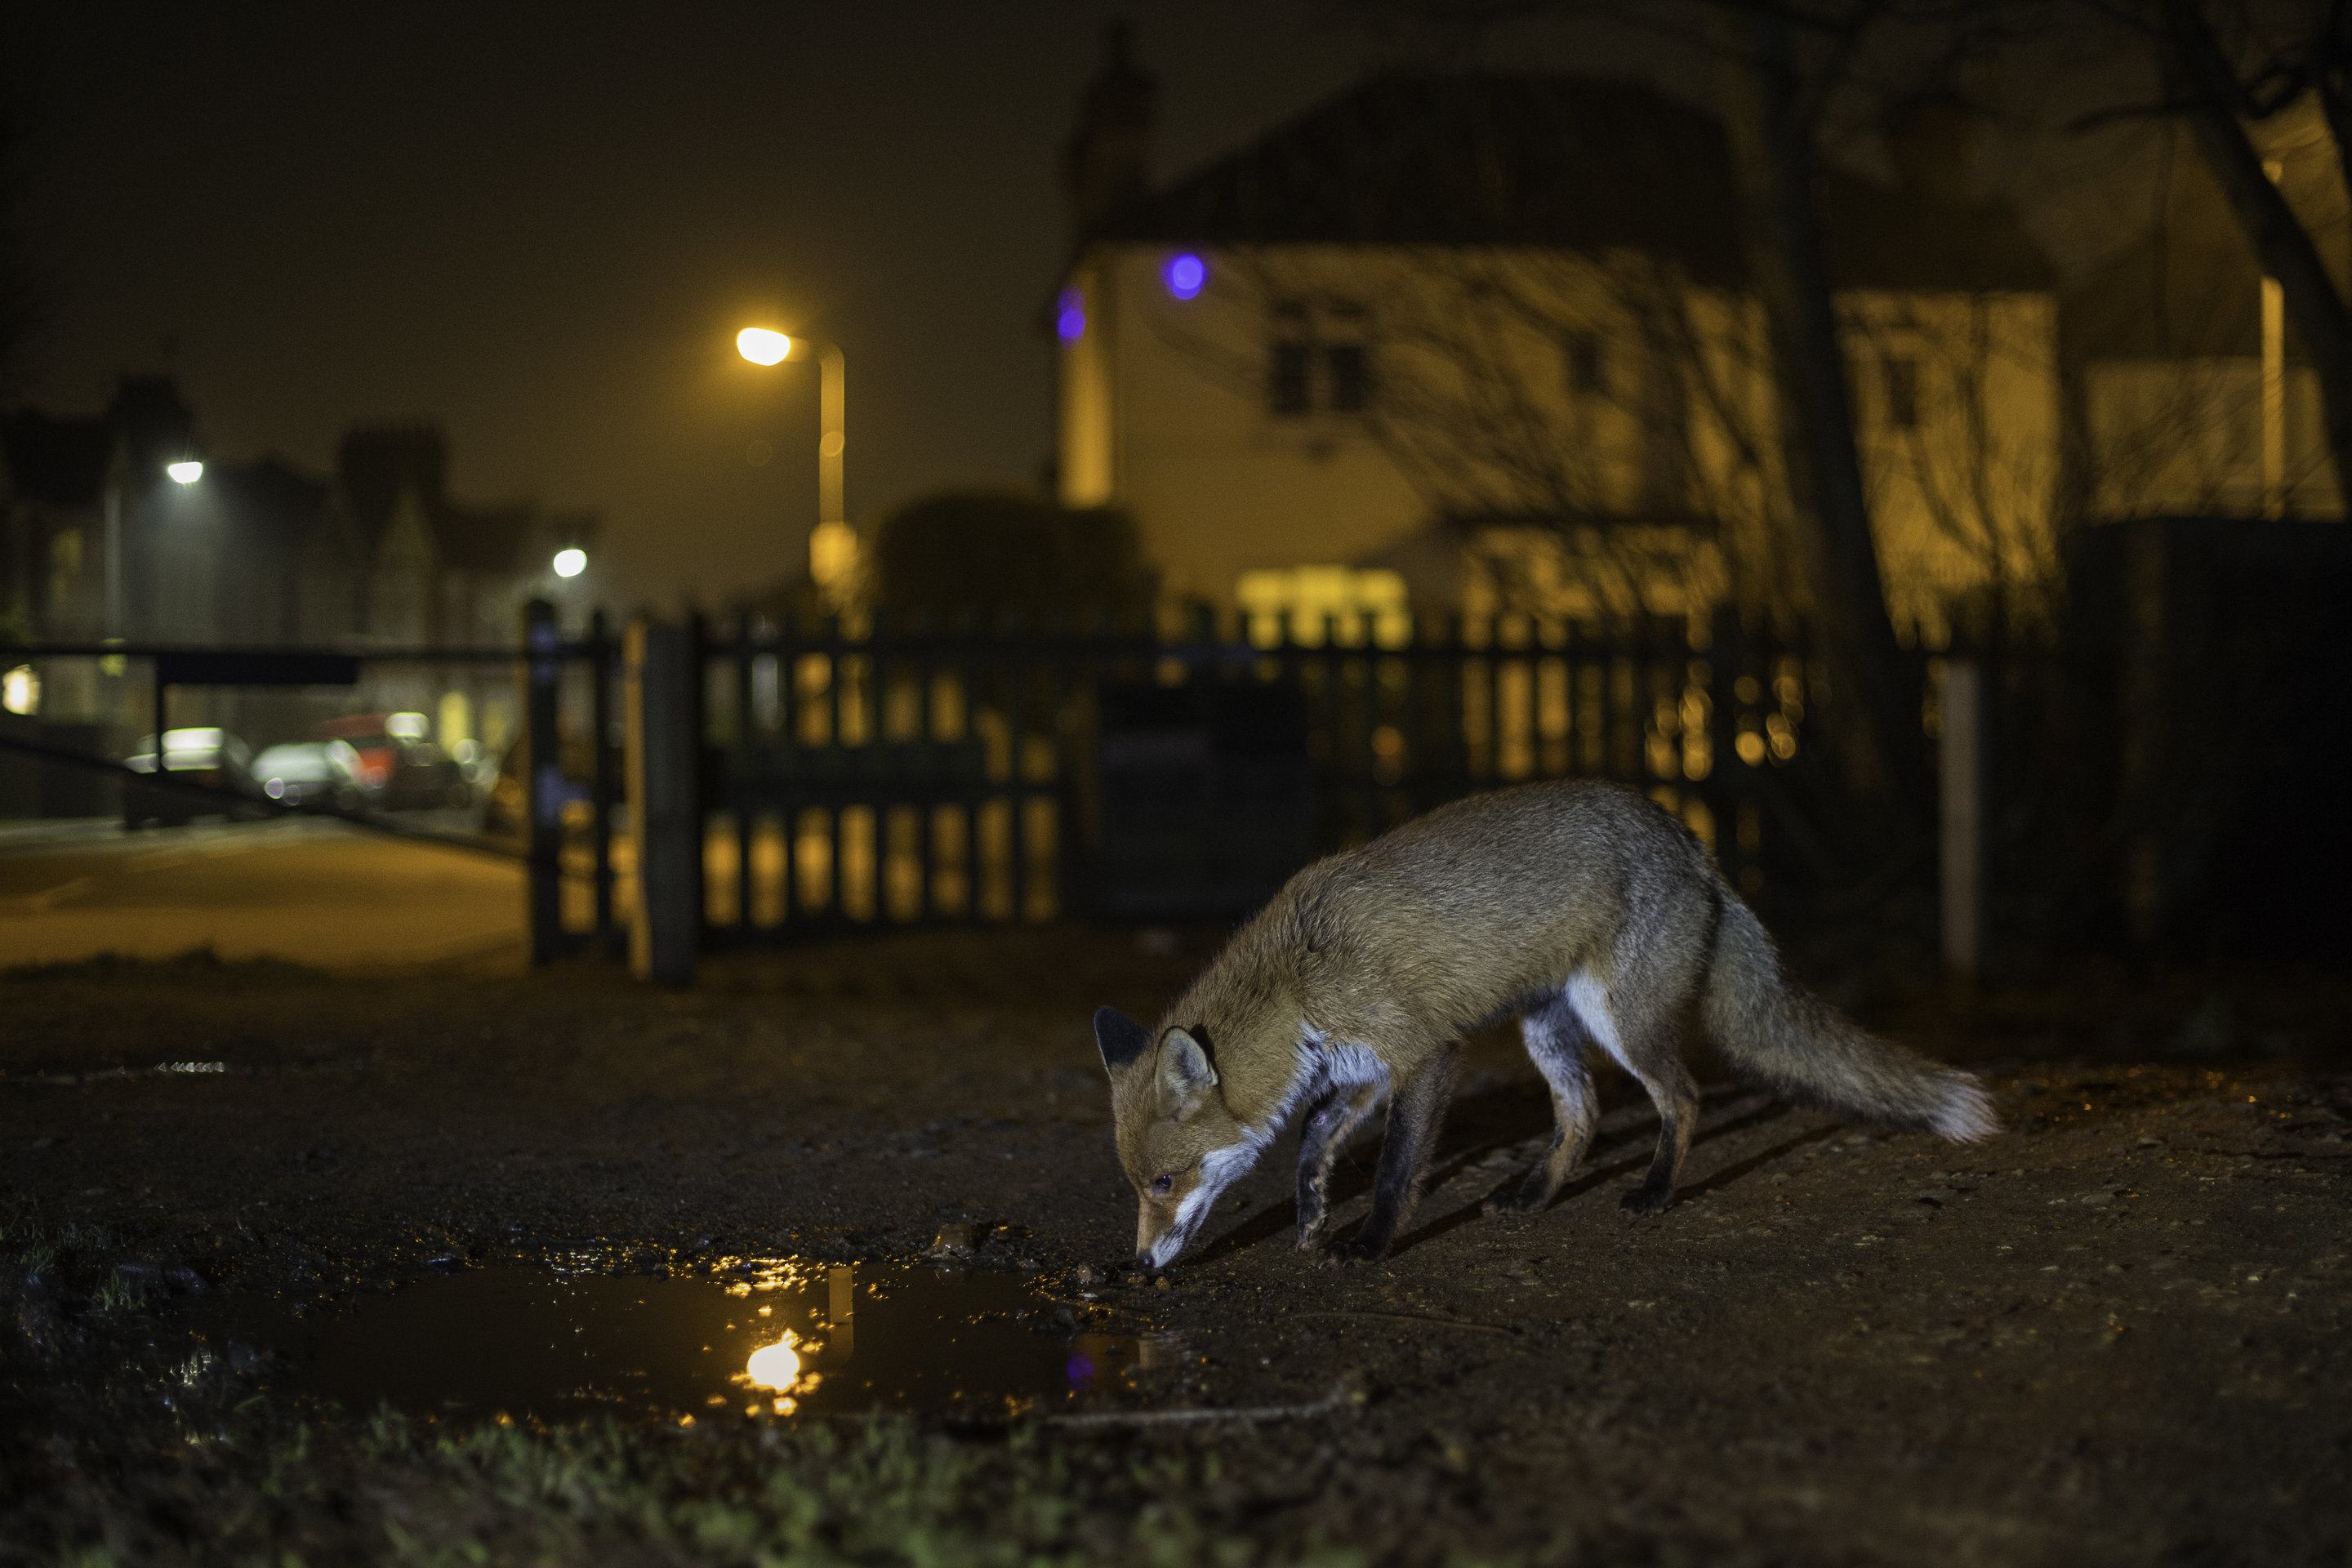 To avoid humans, more wildlife now work the night shift